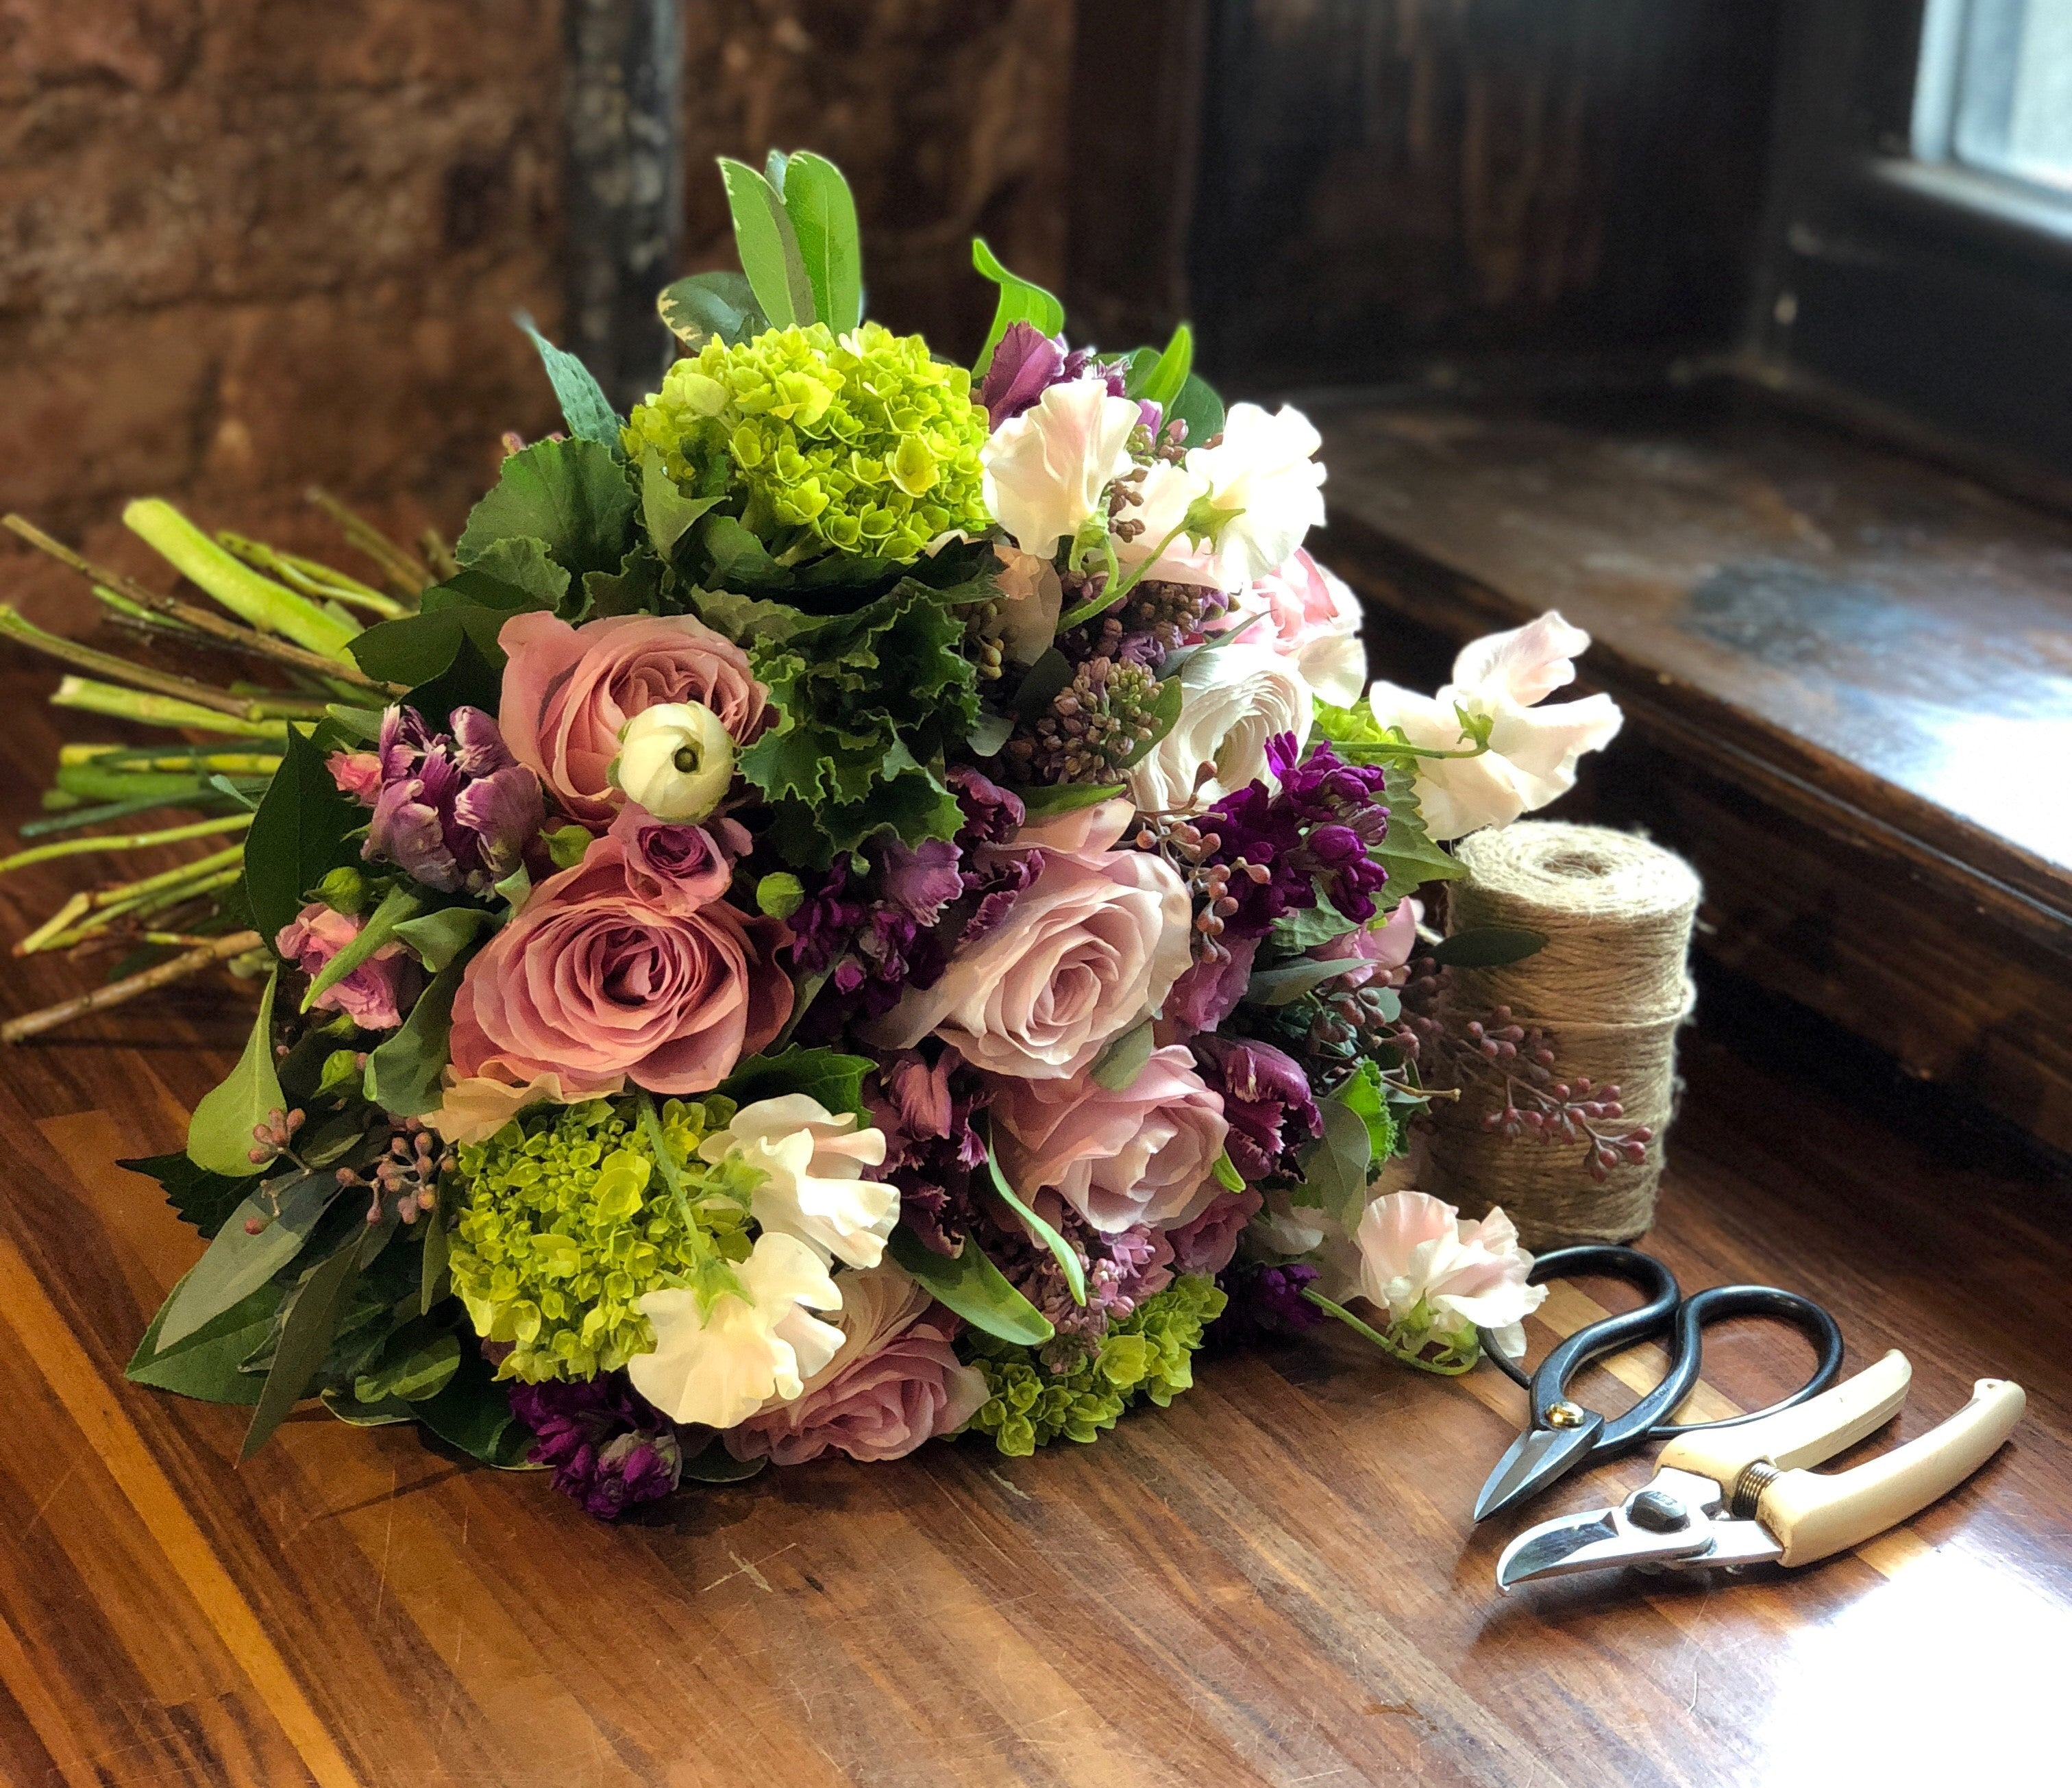 Spring Floral Design Workshop - Saturday, April 4th, from 3:30 - 5:30pm - Élan Flowers